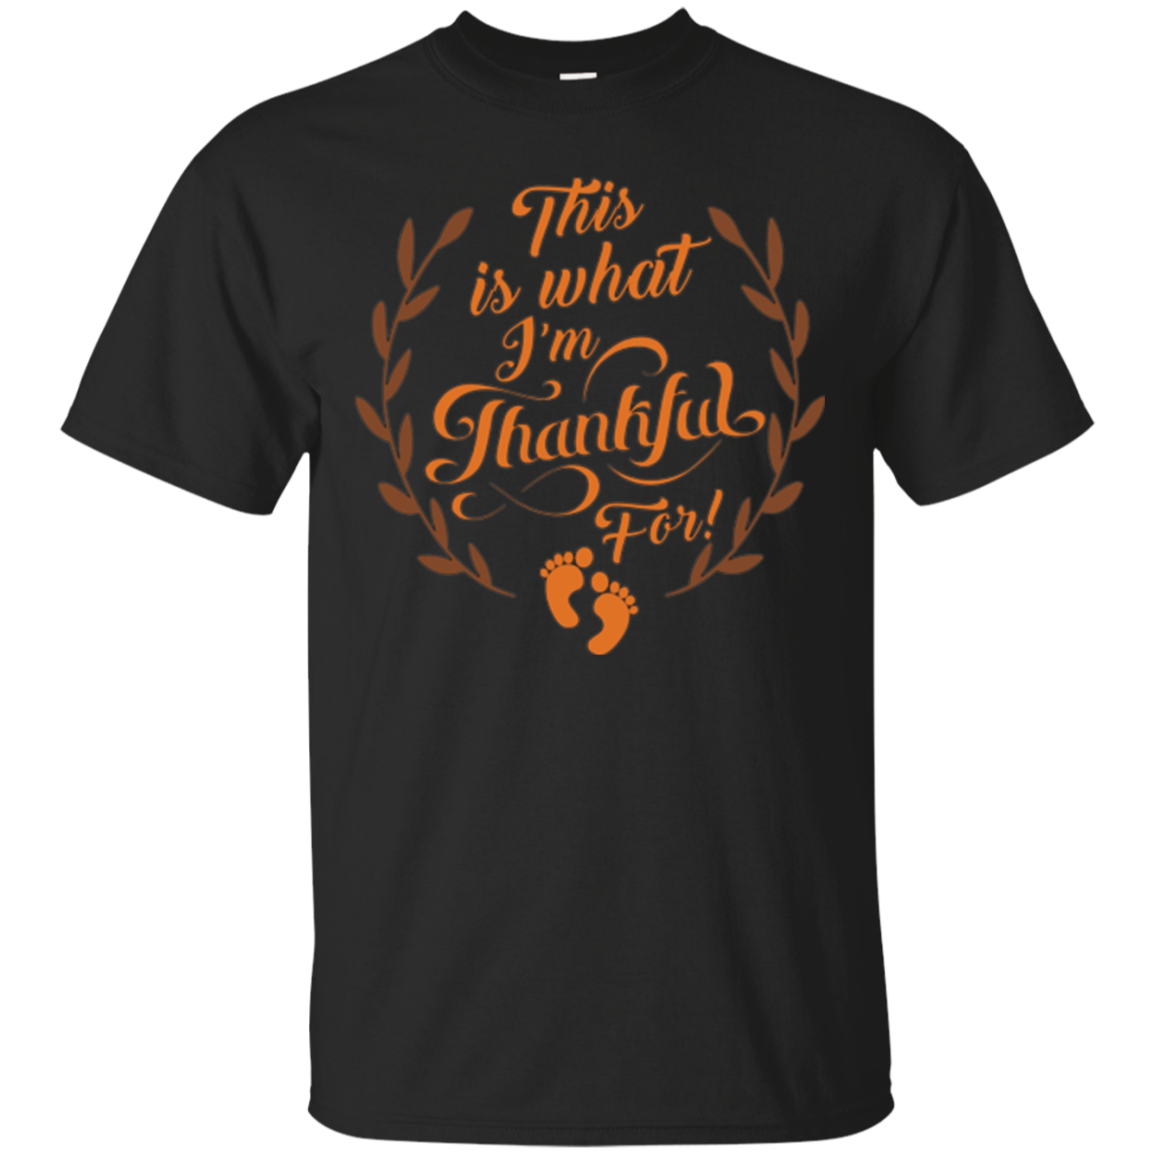 This Is What I'm Thankful For T-shirt Maternity Pregnant Mom